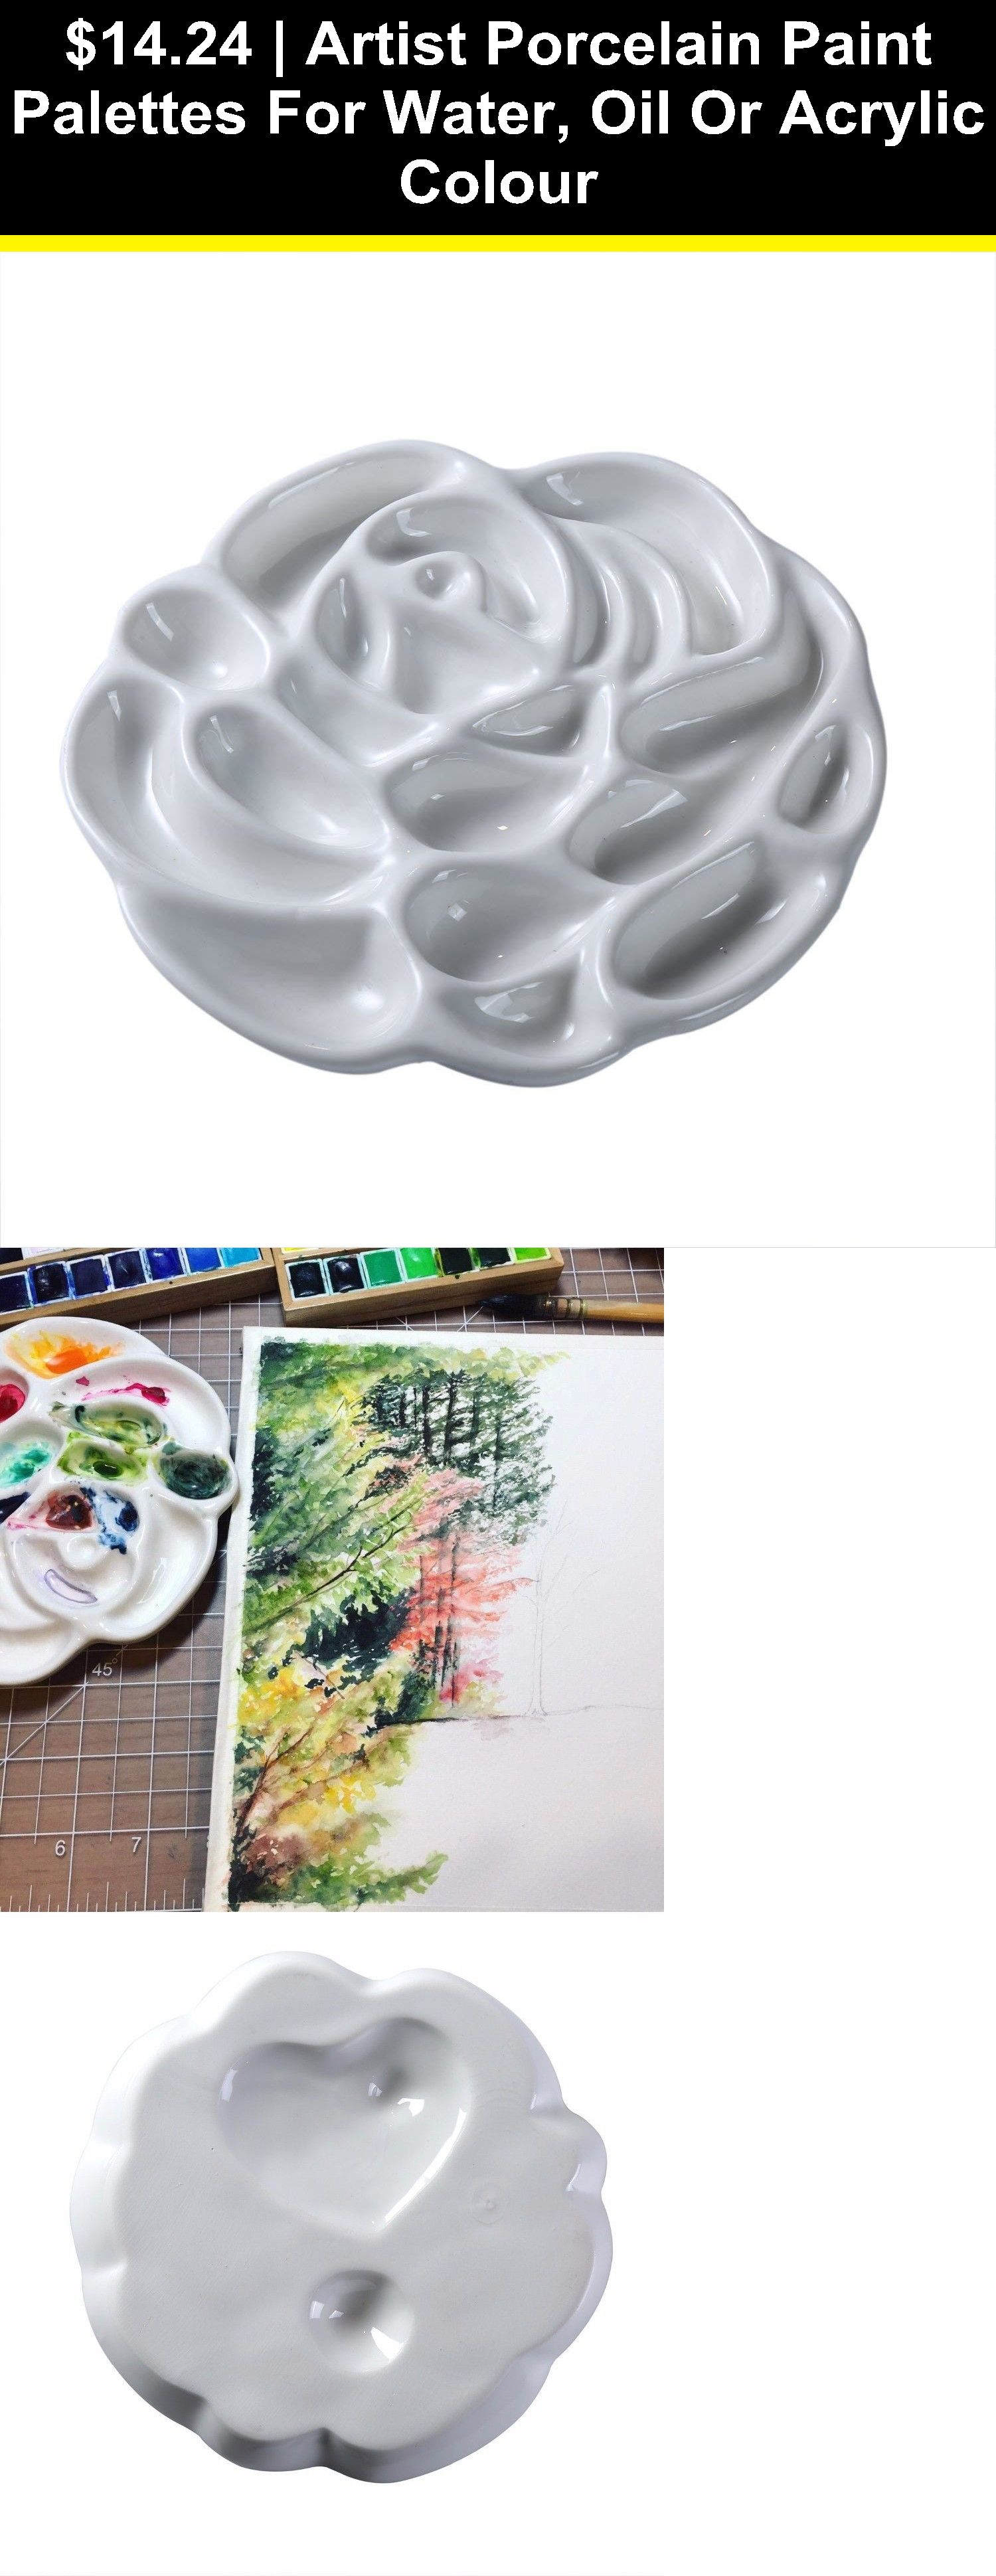 Details about Artist Porcelain Paint Palettes for Water